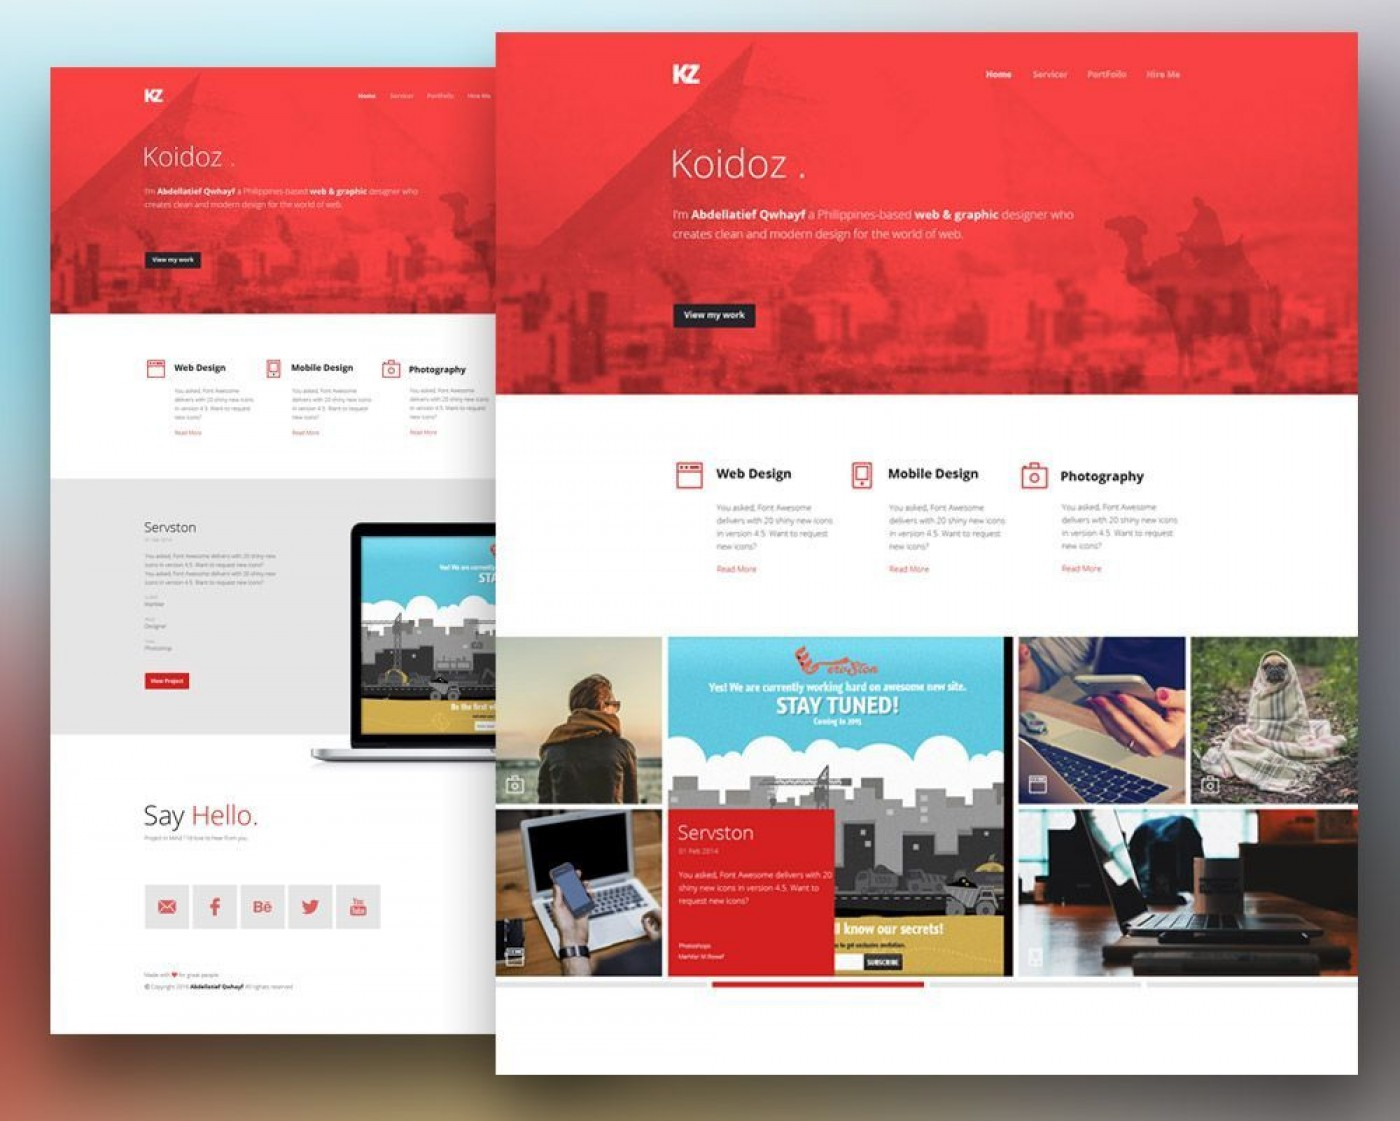 000 Stupendou One Page Website Template Psd Free Download Idea 1400